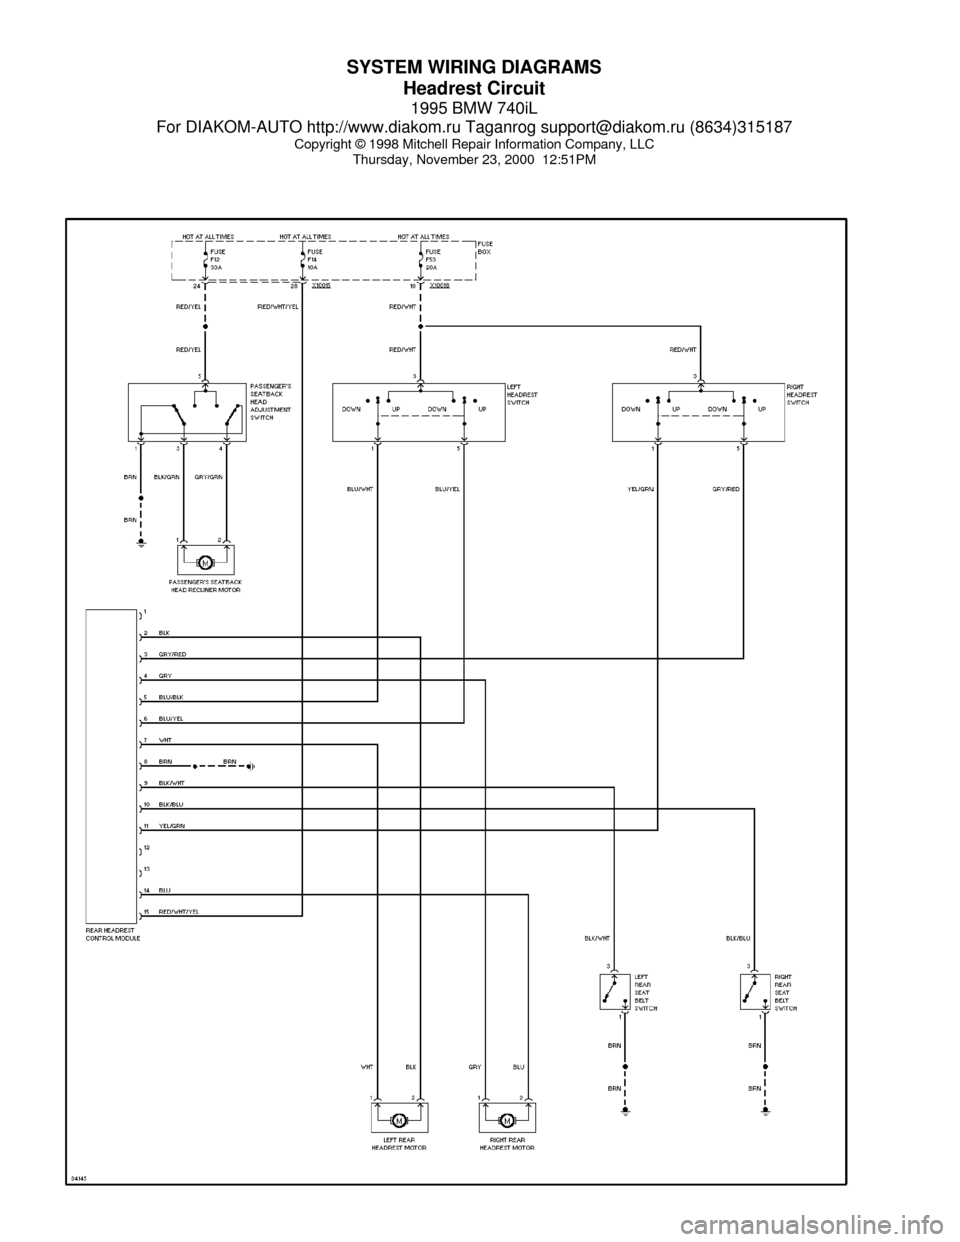 hight resolution of 1998 bmw 740i wiring diagram wiring diagram origin bmw 740i vs 740il bmw 1998 bmw 740i wiring diagram